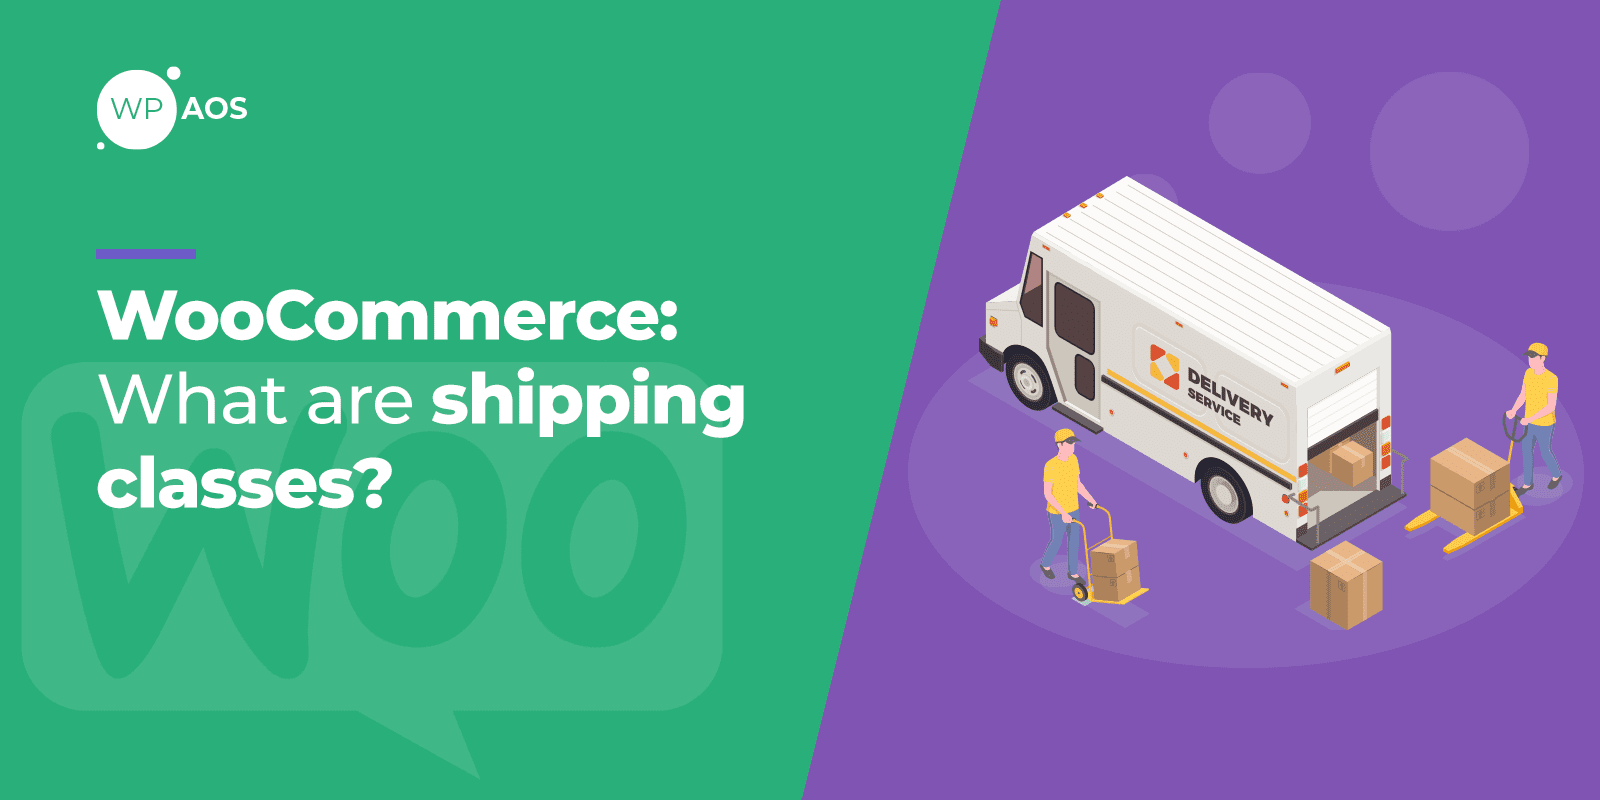 WooCommerce What are Shipping Classes, WordPress maintenance, wpaos